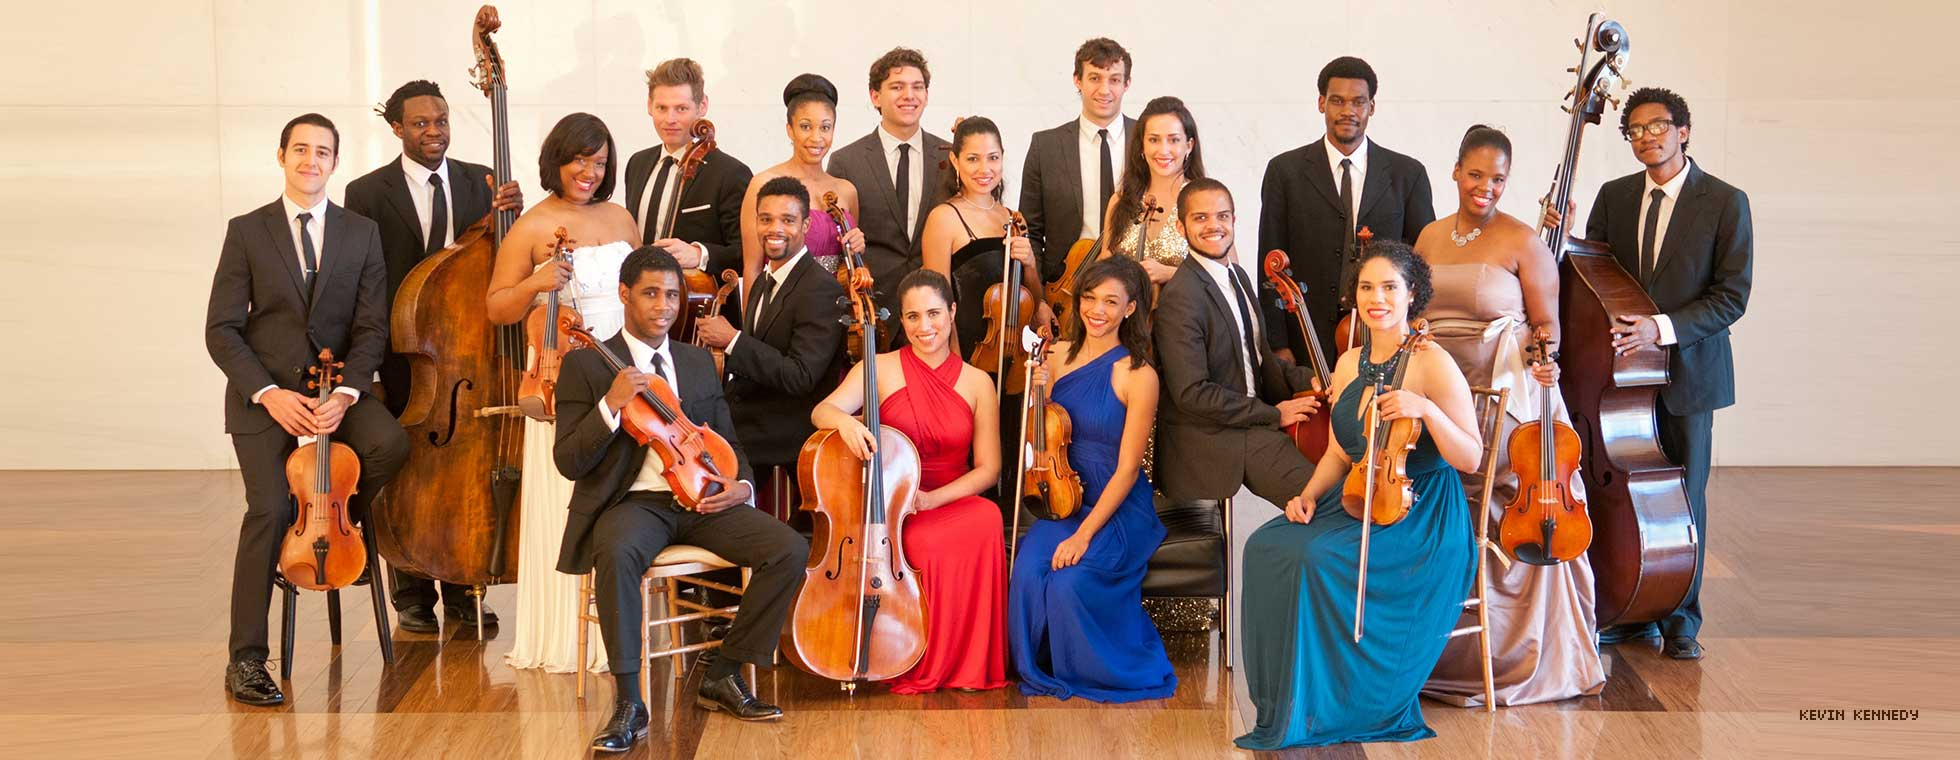 18 musicians in formal attire stand together as a group with their instruments.